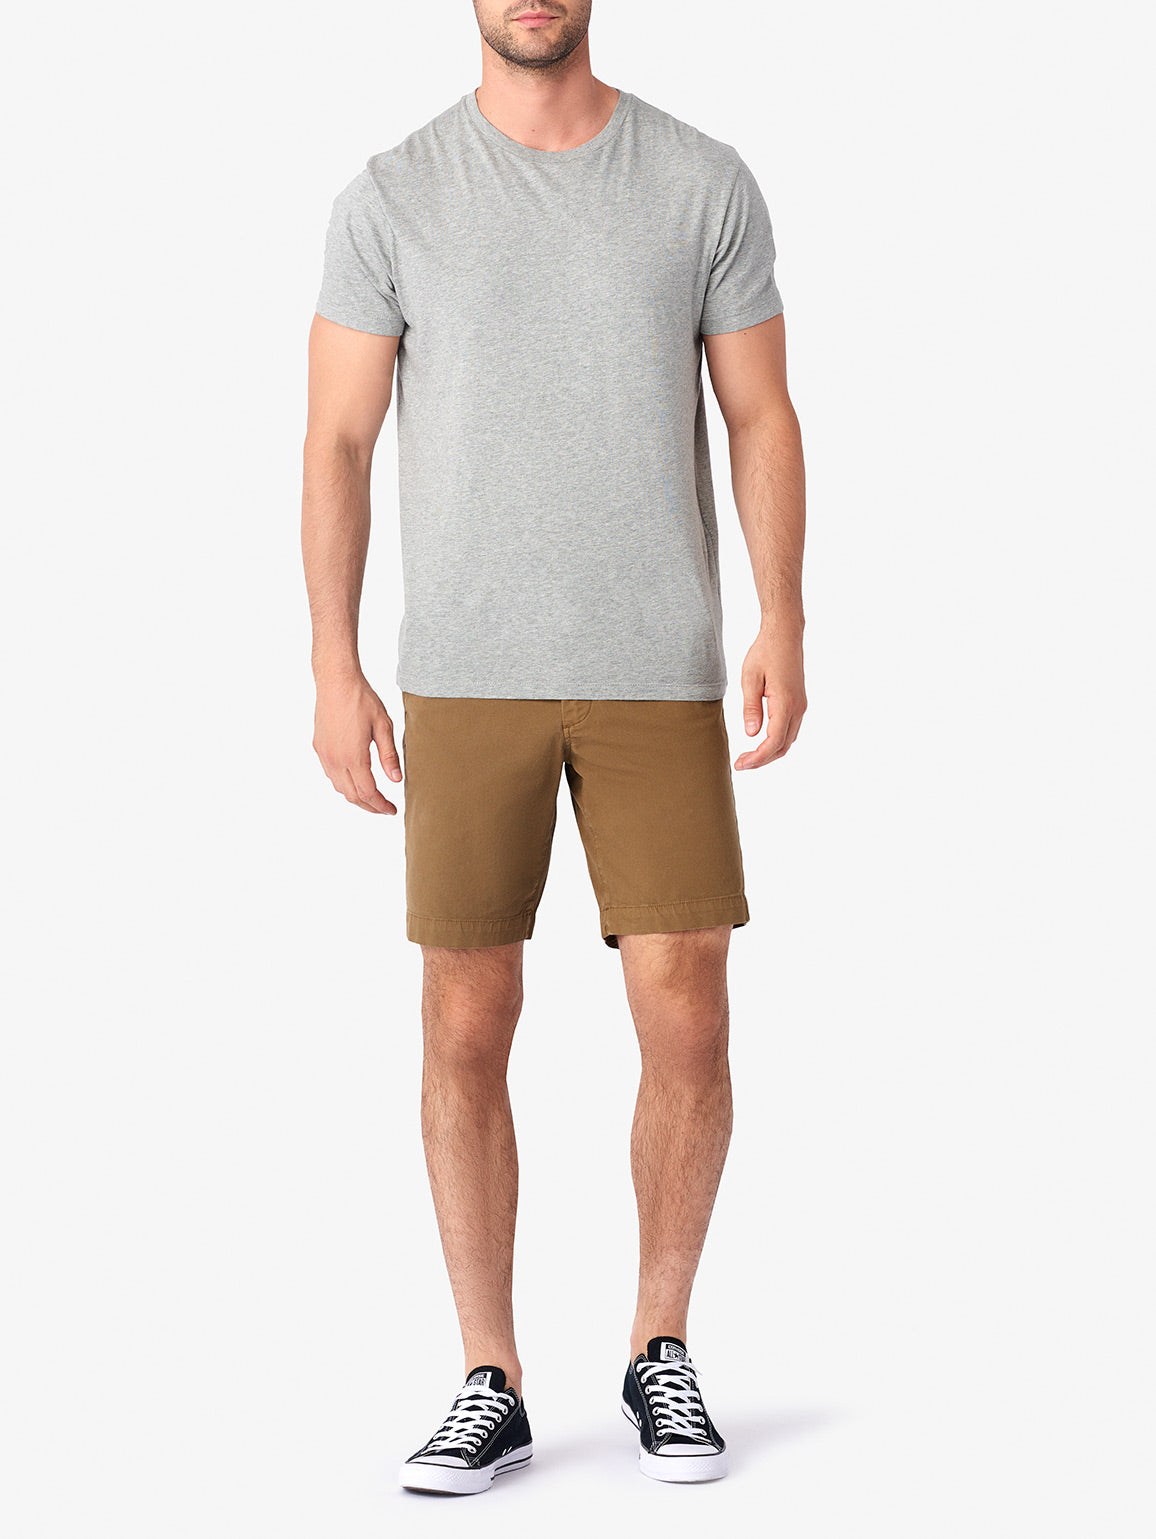 Jake Chino Short | Carafe